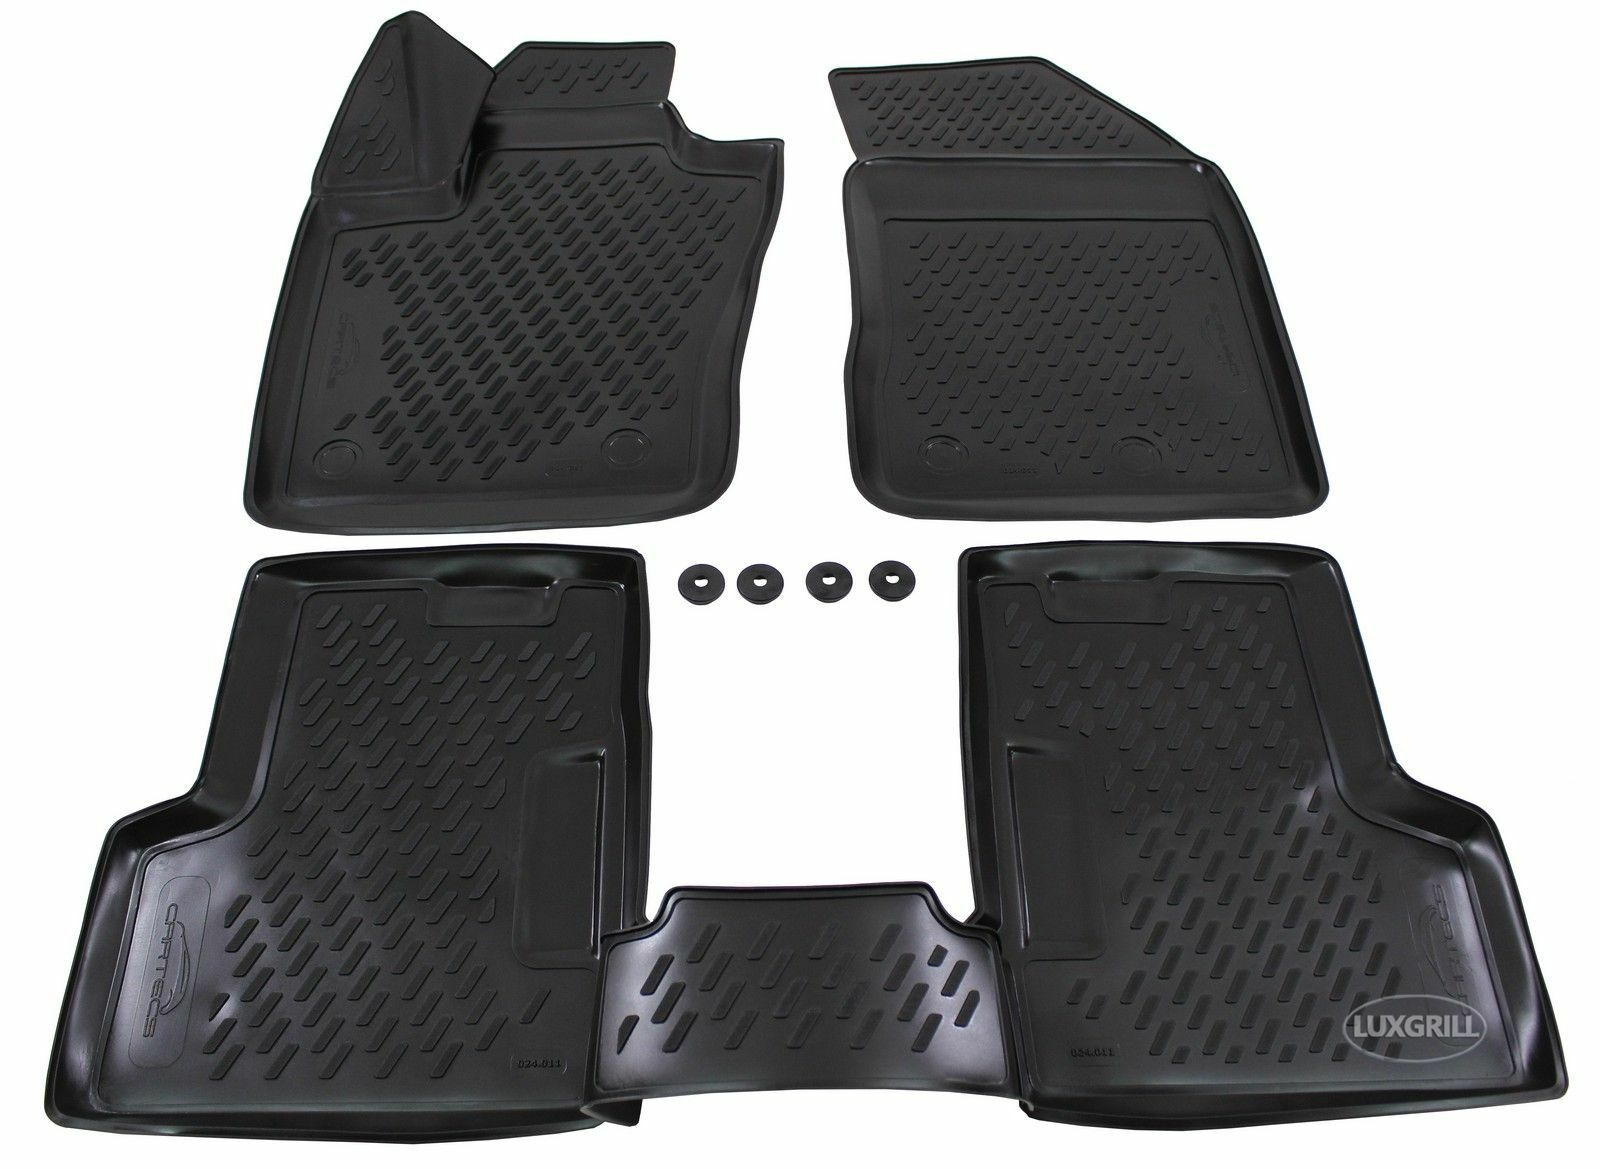 Tappetini Tappeti PRO LINE 3D Ford Fiesta VI 2008-2016 in gomma